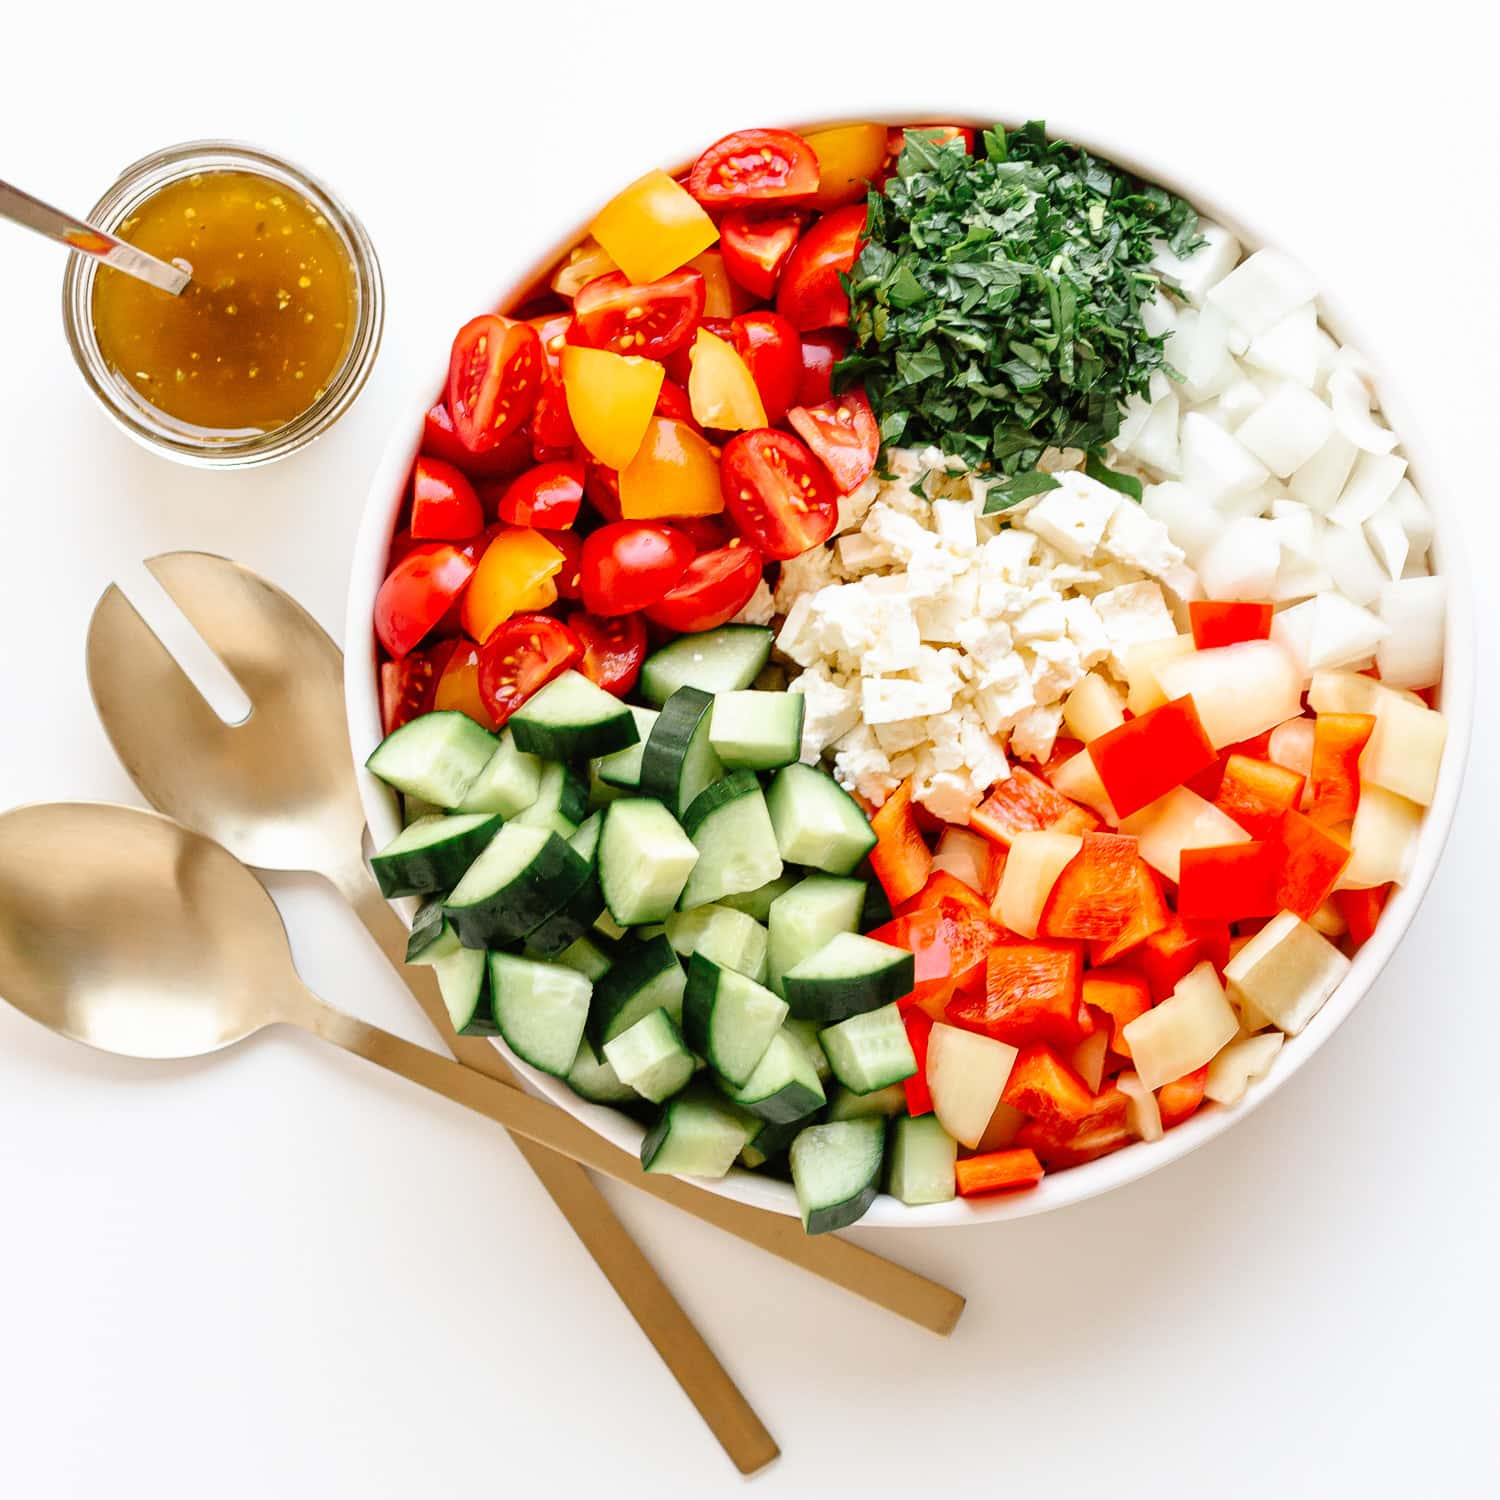 Variety of chopped veggies arranged separately in a bowl with dressing and salad servers on the side.